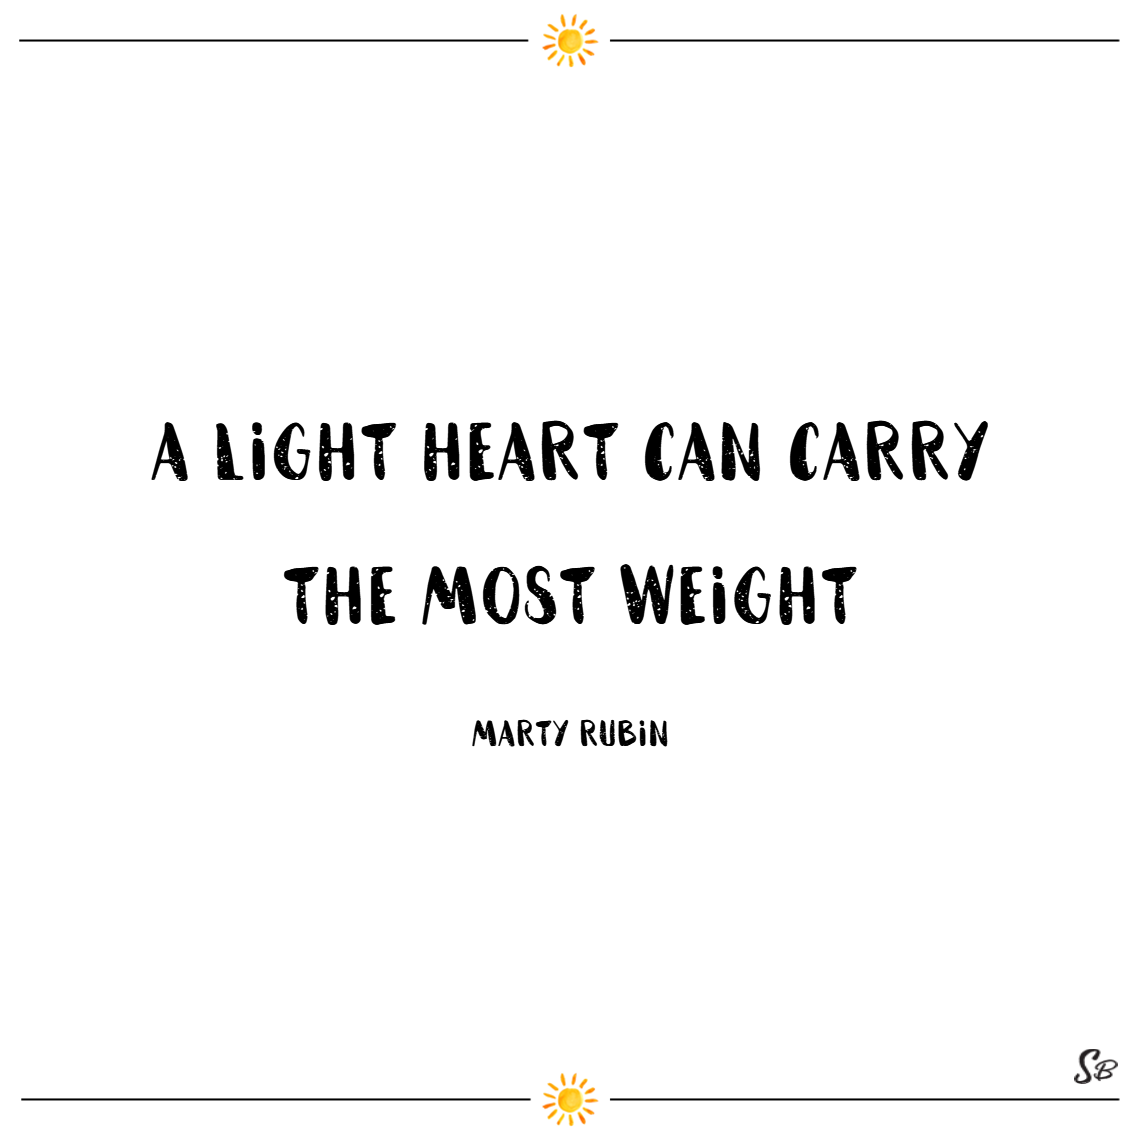 A light heart can carry the most weight. – marty rubin